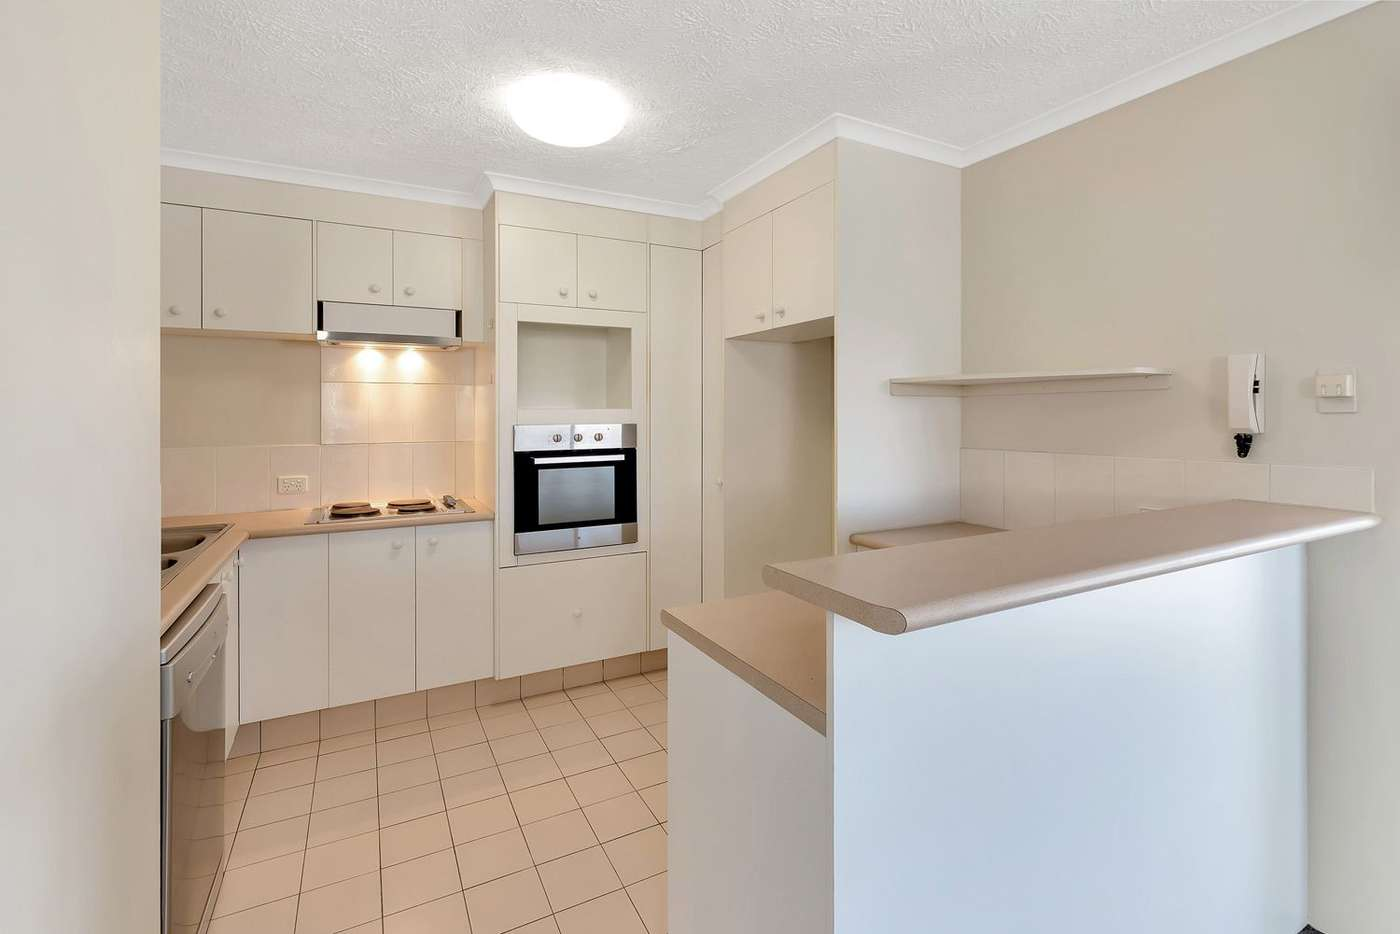 Sixth view of Homely apartment listing, 33/12 Whiting Street, Labrador QLD 4215